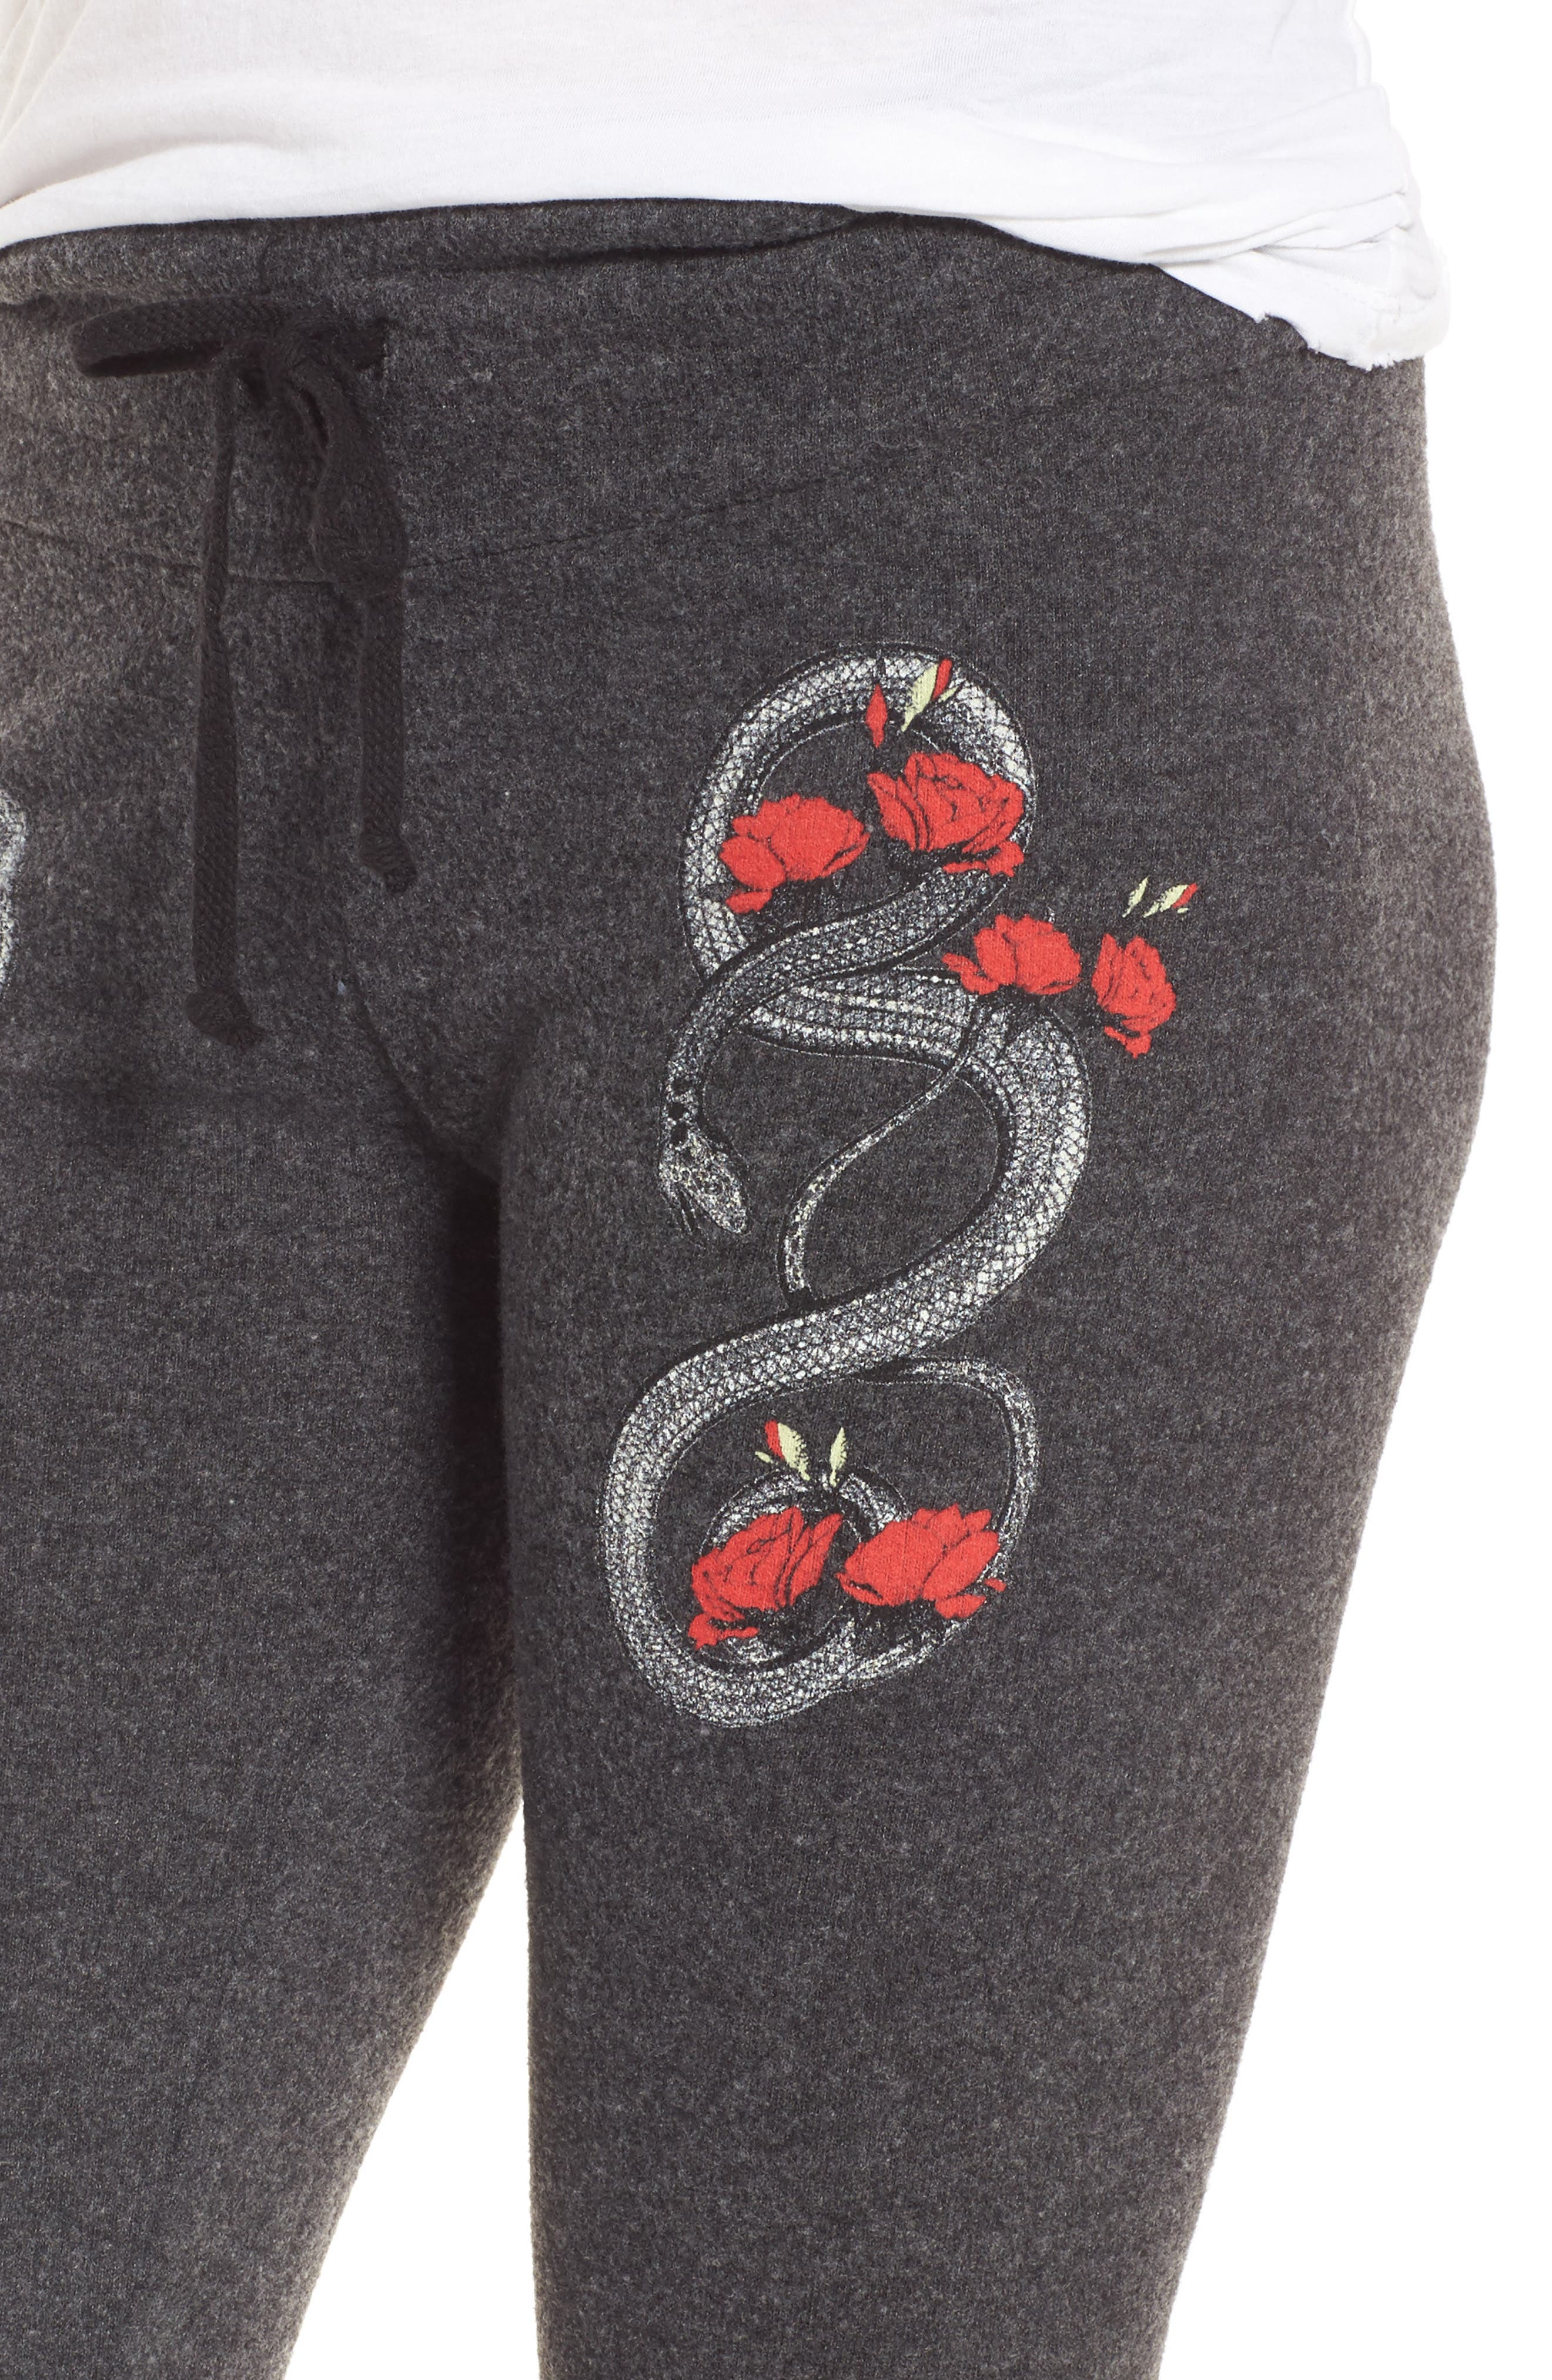 Red Snakes Sweatpants,                             Alternate thumbnail 4, color,                             002